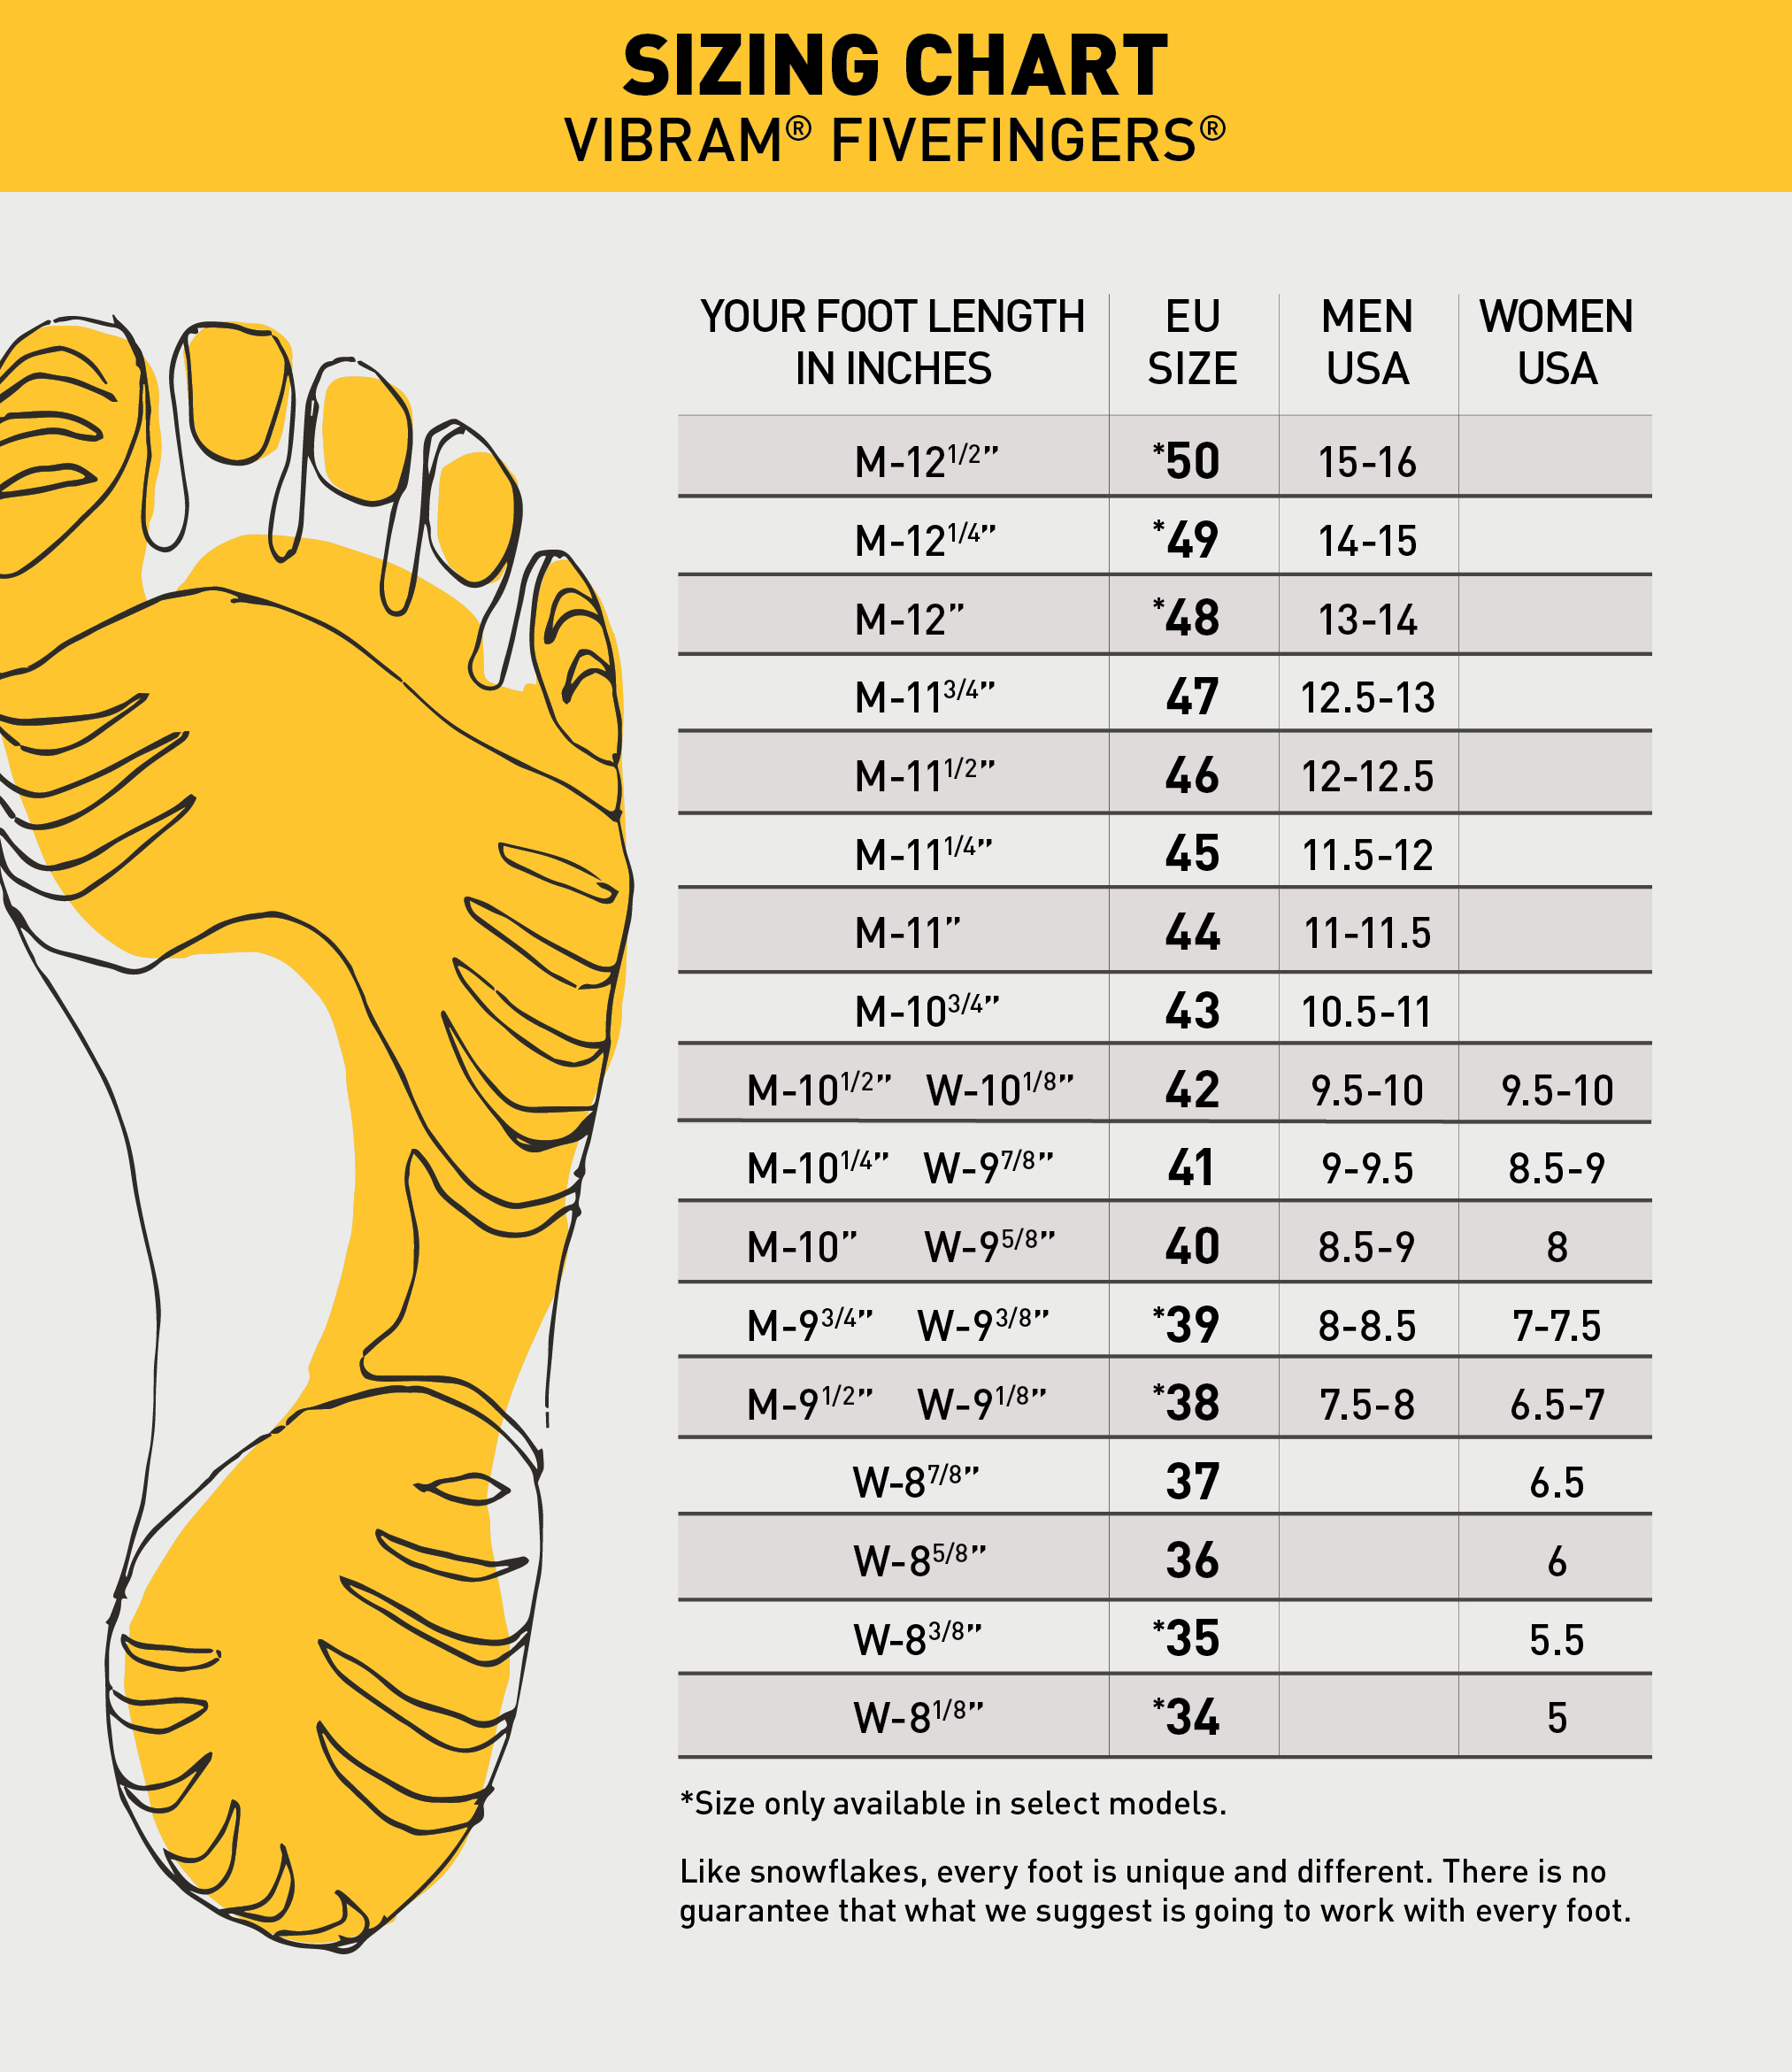 Vff Shoe Size Conversion